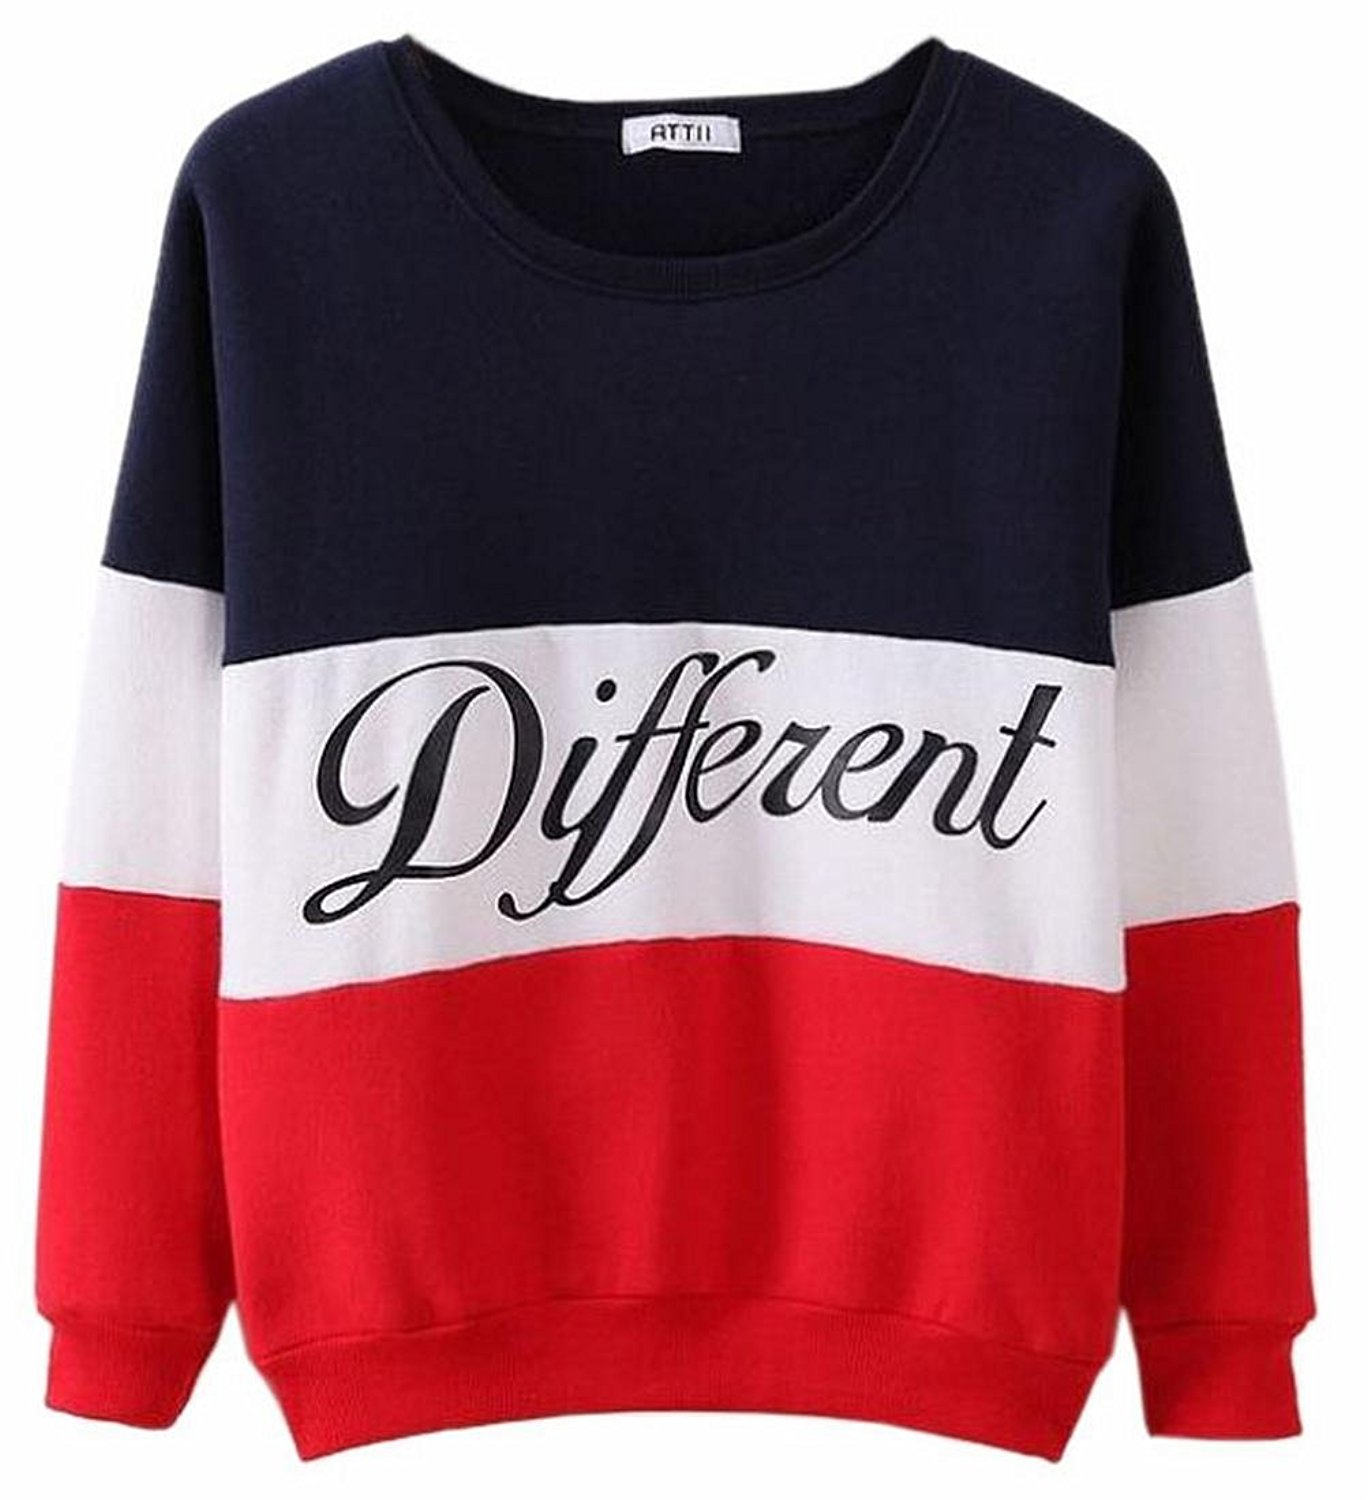 CBTLVSN Women's Letter Print Colorblock Round Neck Pullover Outerwear